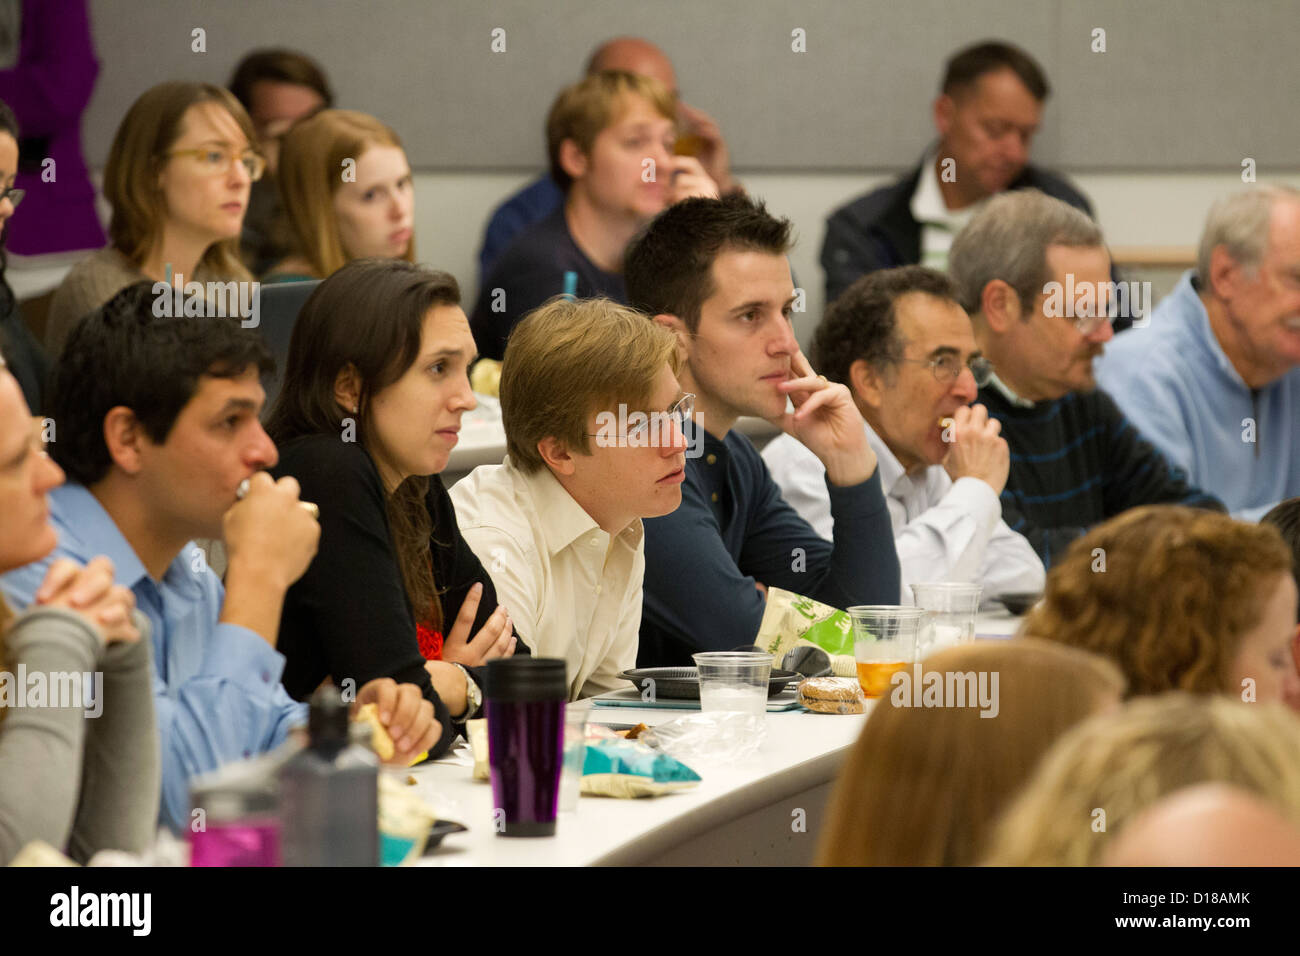 group of students including various age groups listen to lecture in university classroom - Stock Image